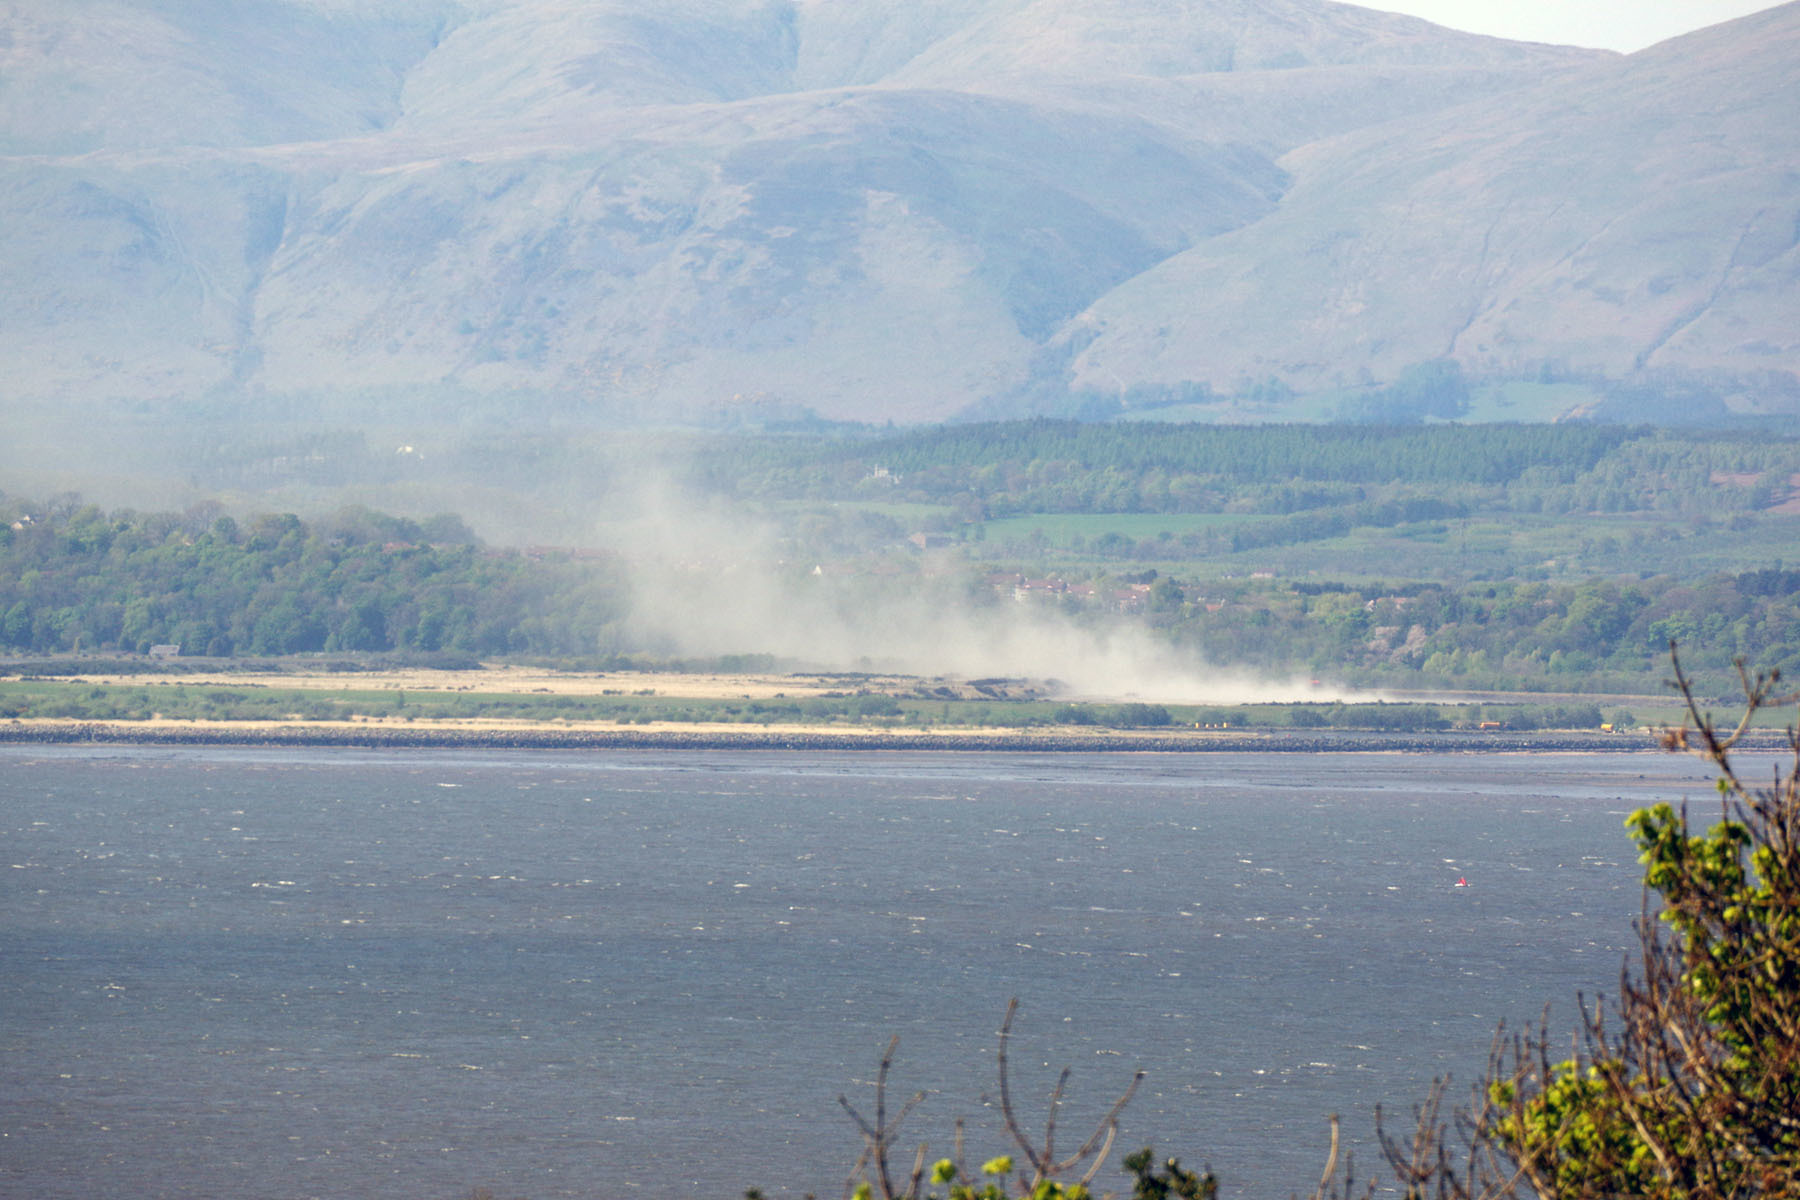 Dust seen from across the Forth